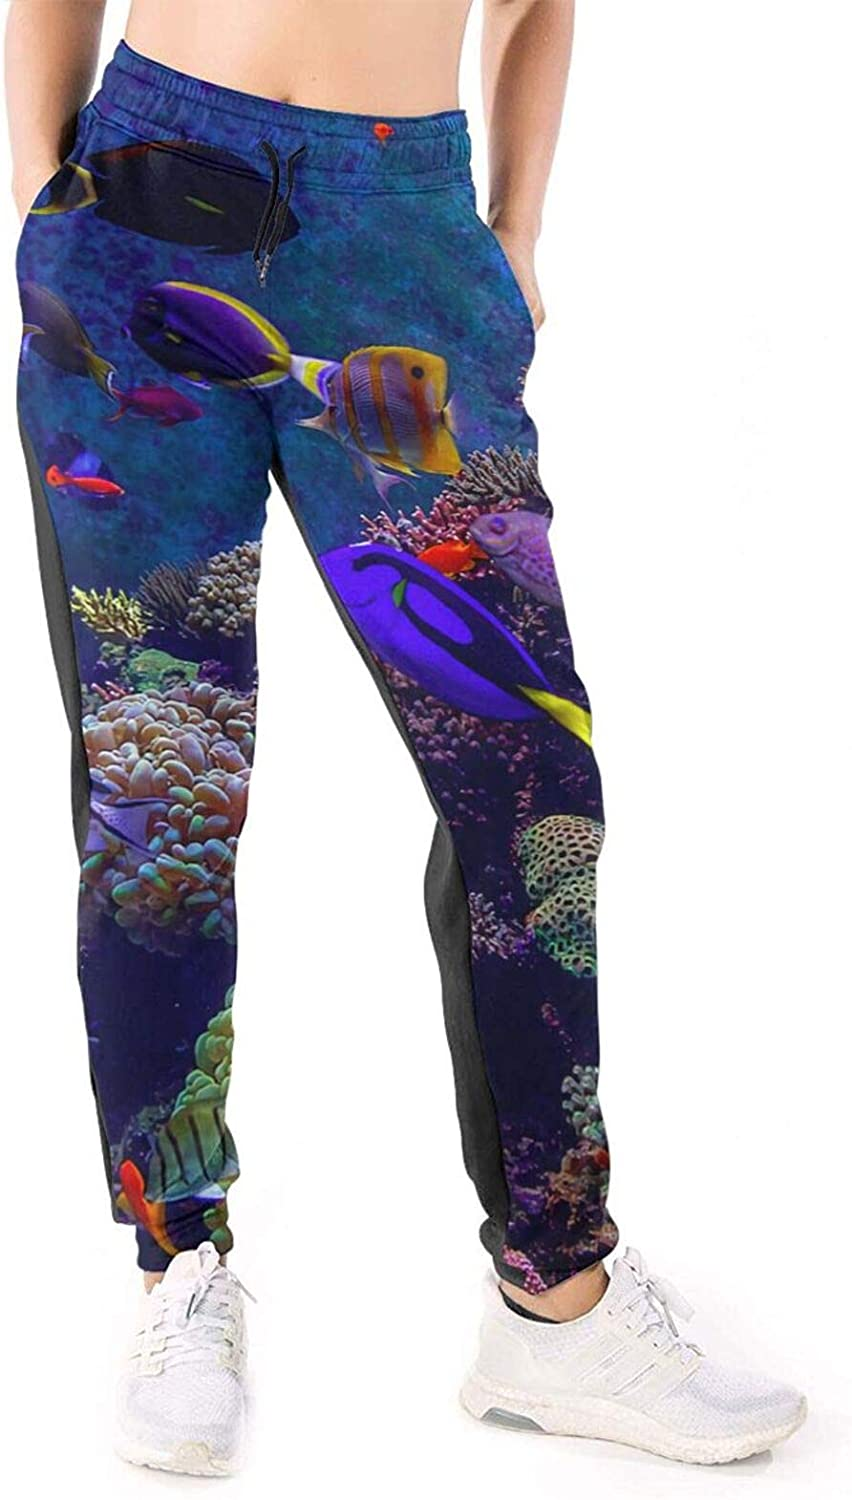 Women Joggers Pants Life Underwater Sea World Ocean Athletic Sweatpants with Pockets Casual Trousers Baggy